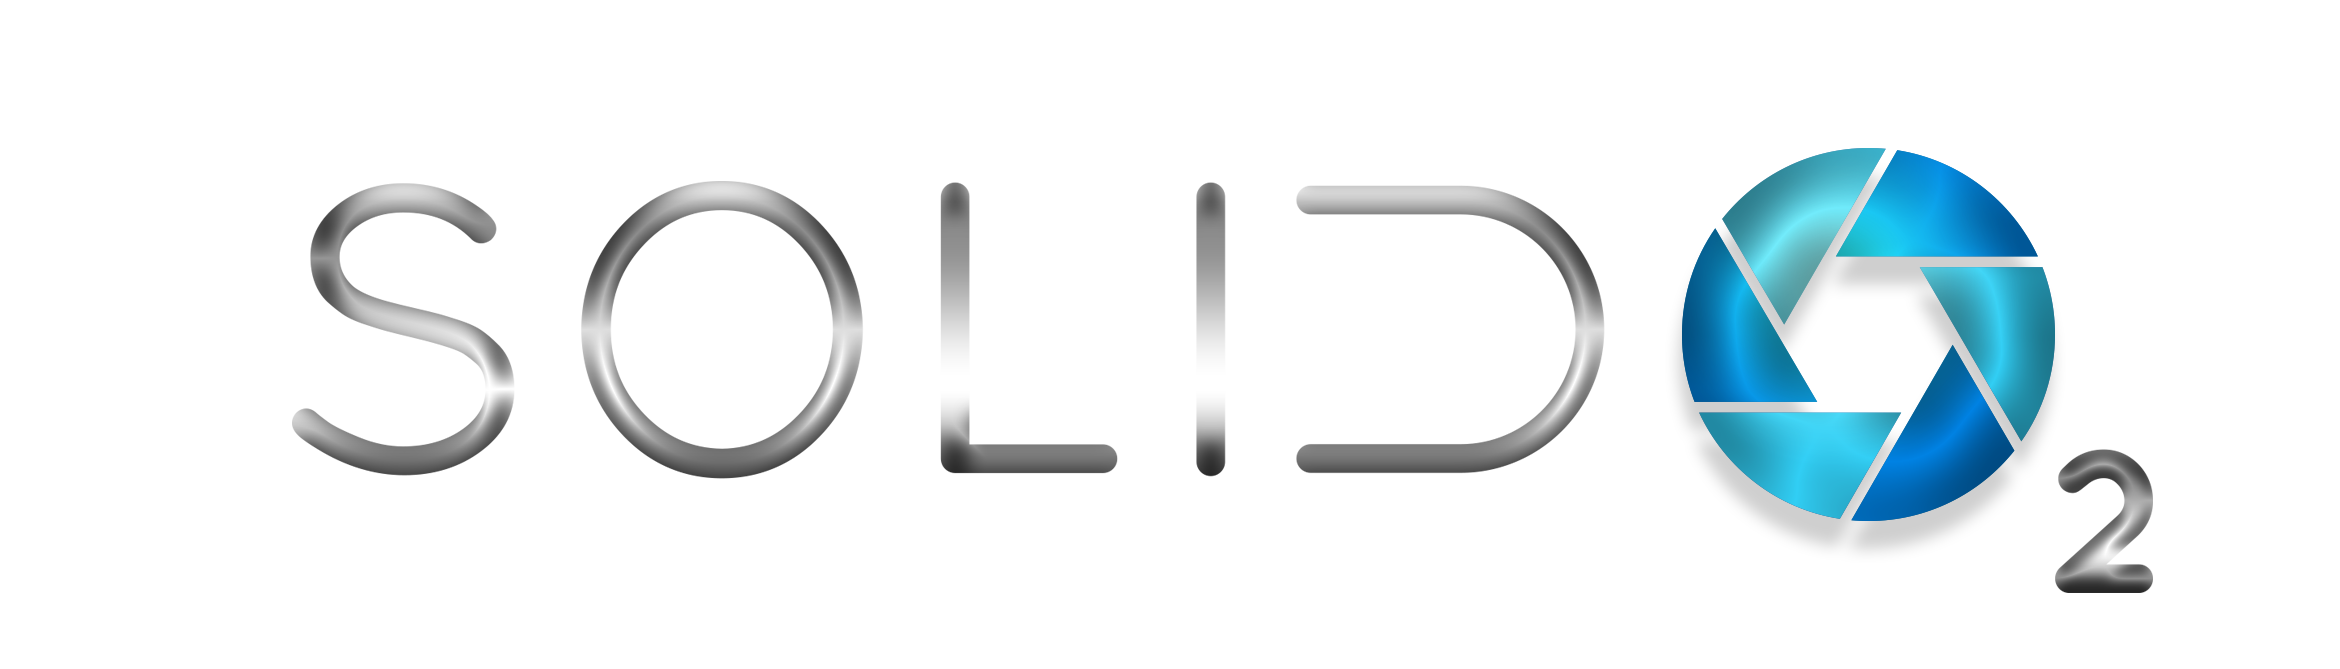 Solid O2